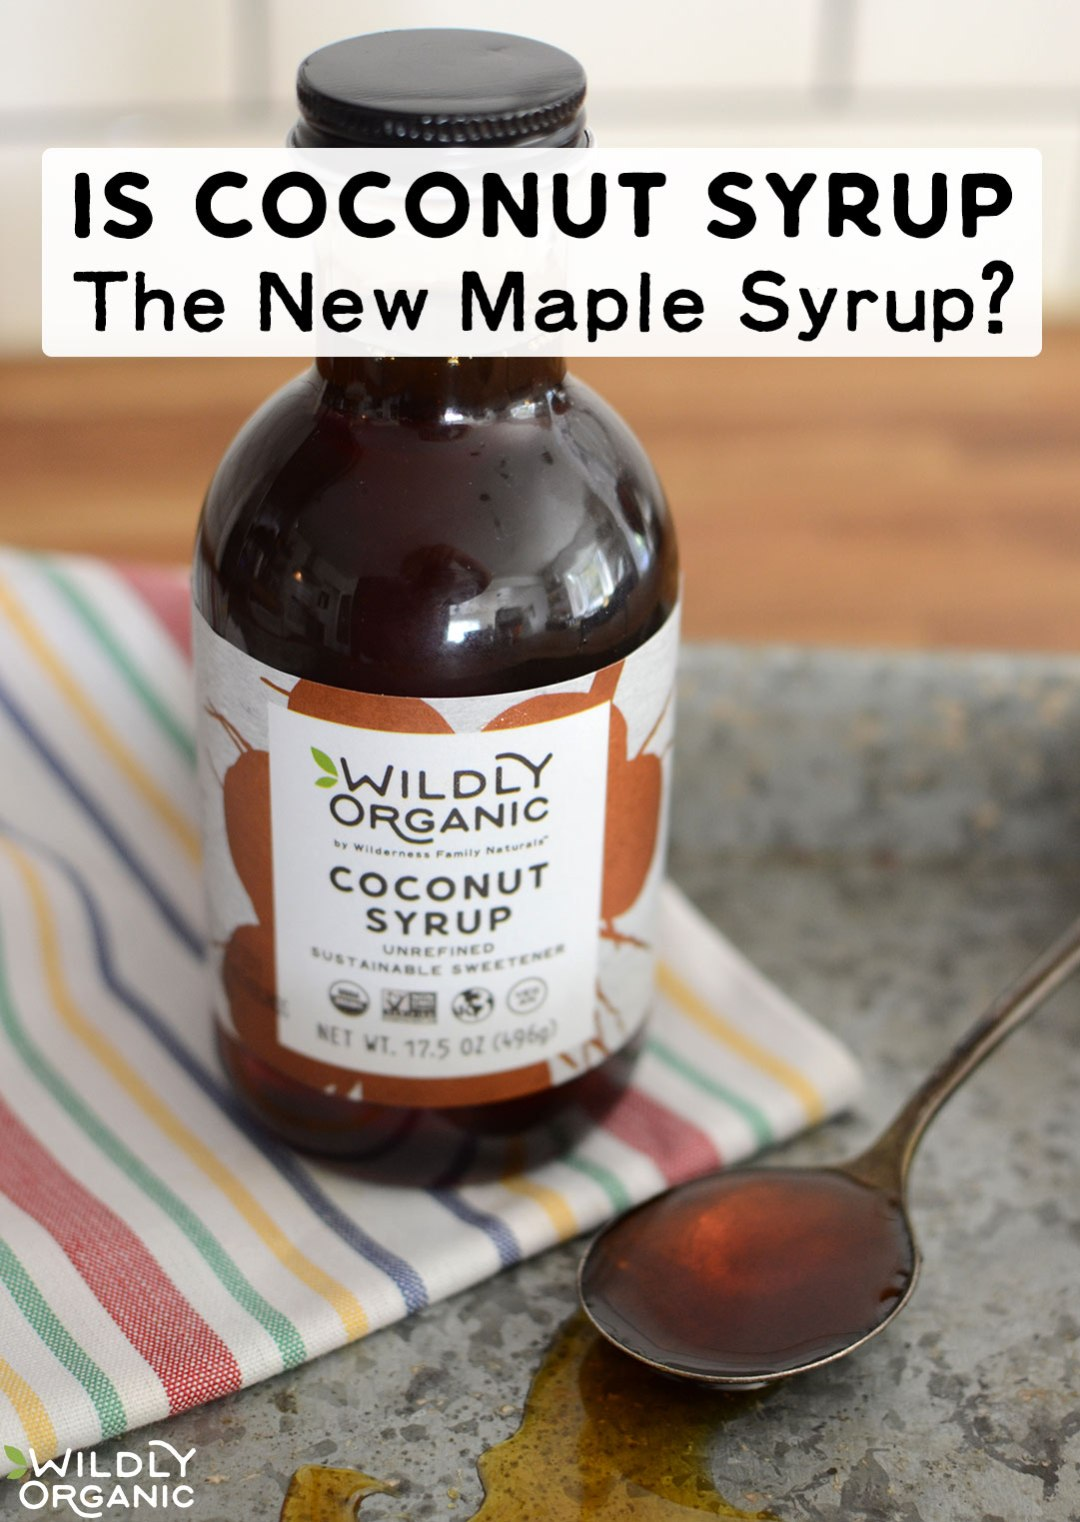 Is Coconut Syrup The New Maple Syrup? | Is coconut syrup the new maple syrup? Learn all about this lower-glycemic, mineral-rich sweetener that combines best of maple syrup and molasses, plus 4 reasons why you should add it to your whole foods pantry! | WildlyOrganic.com